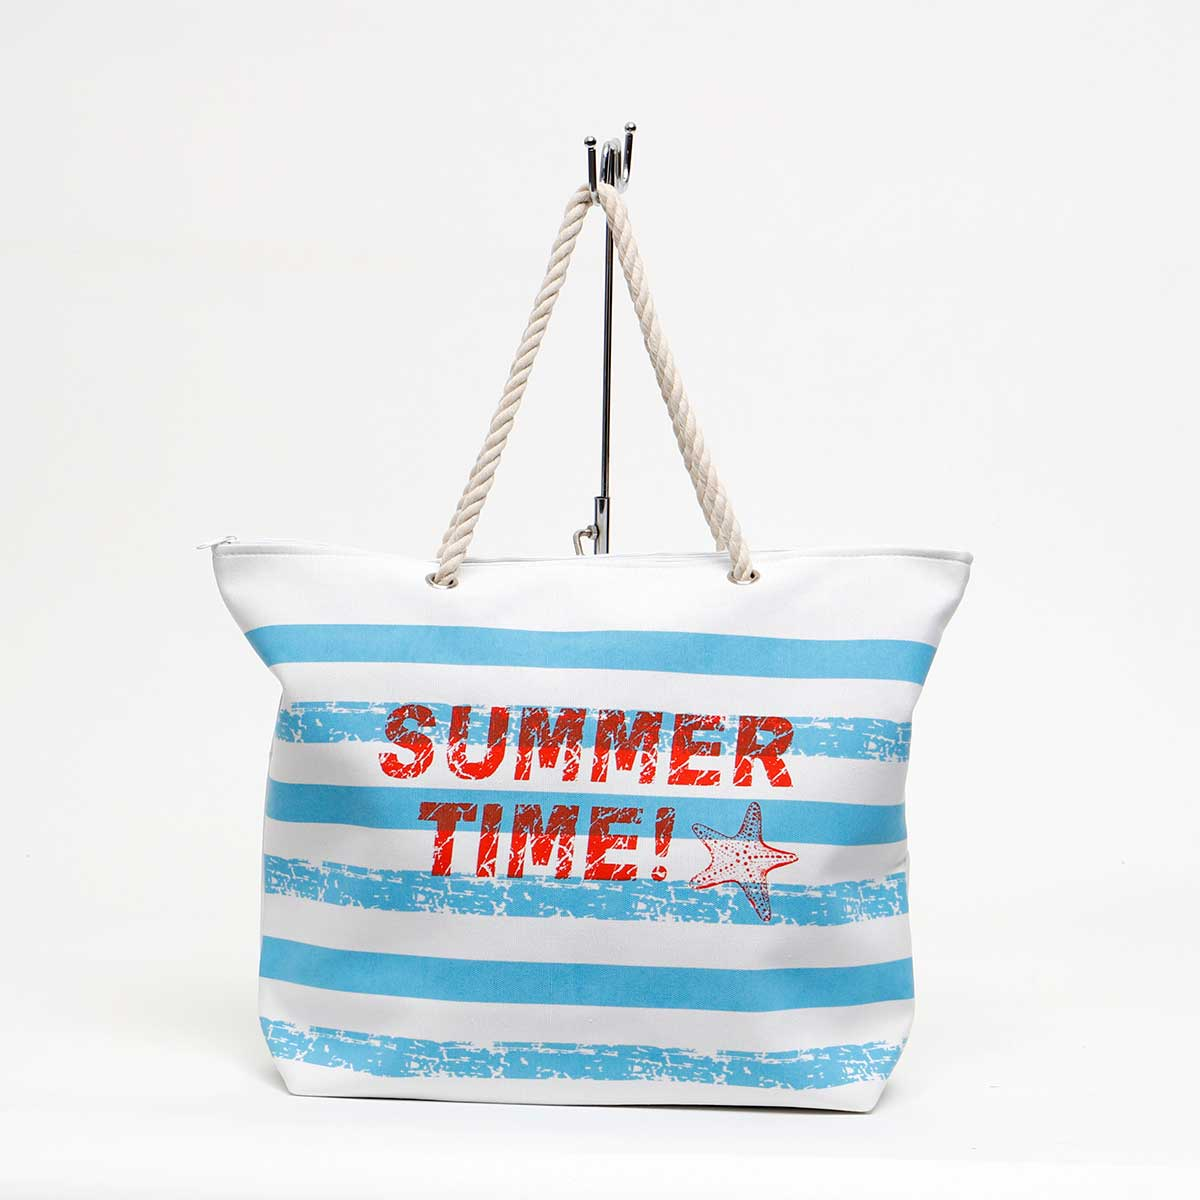 "Blue Summer Time Tote 21""x5.75""x16"" with 8.5"" Rope Handle"